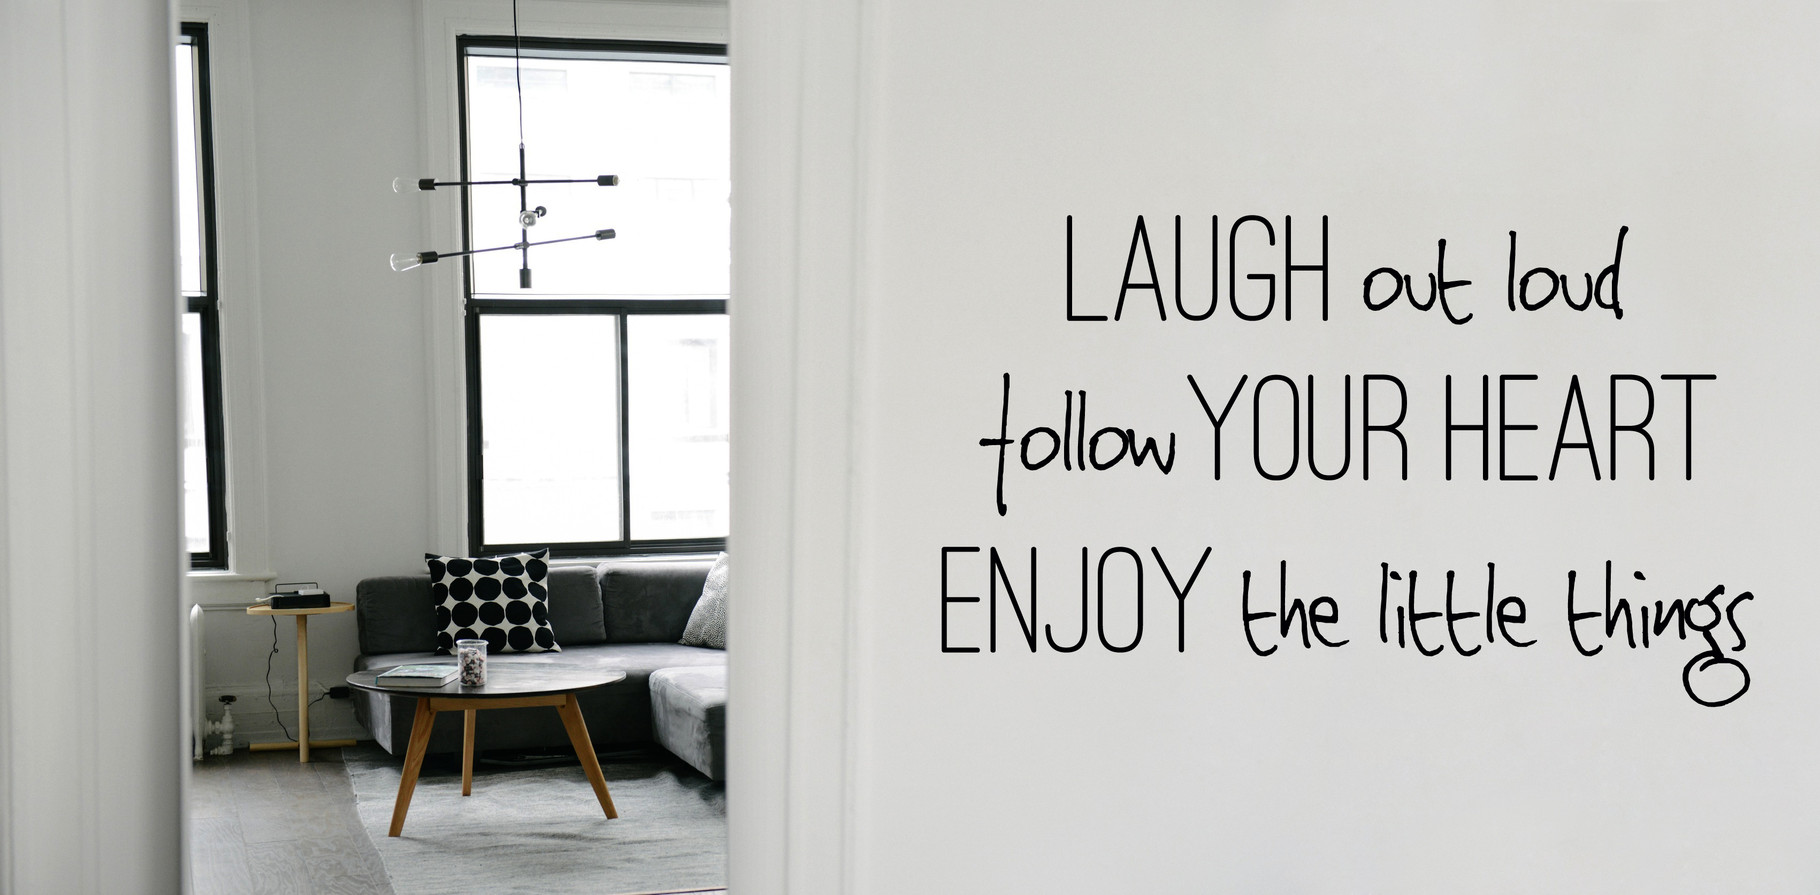 Laugh Out Loud Follow Your Heart Enjoy The Little Things